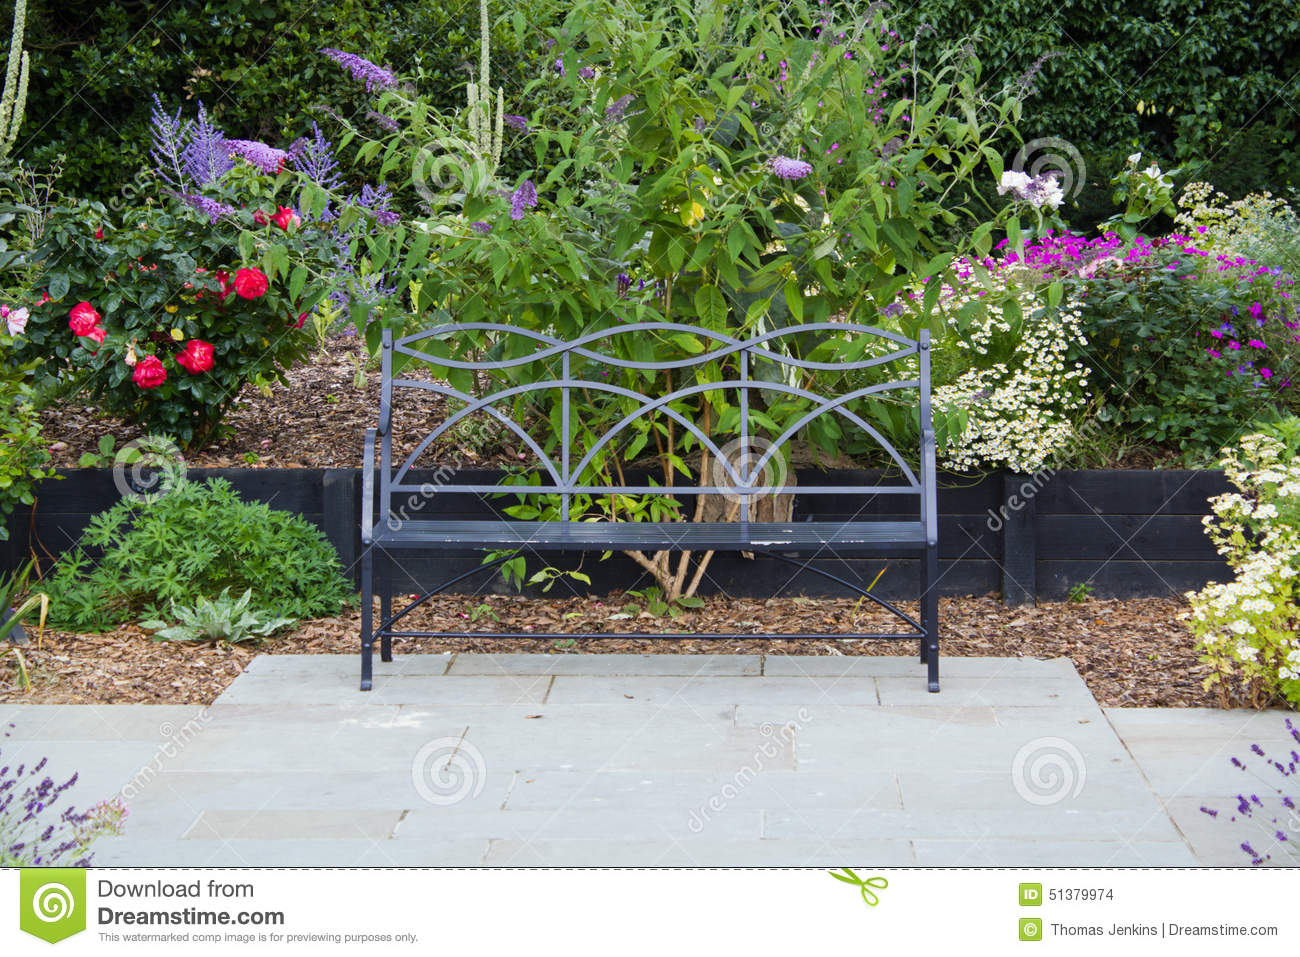 Bench Seat On Garden Patio With Flowers Stock Photo - Image: 51379974